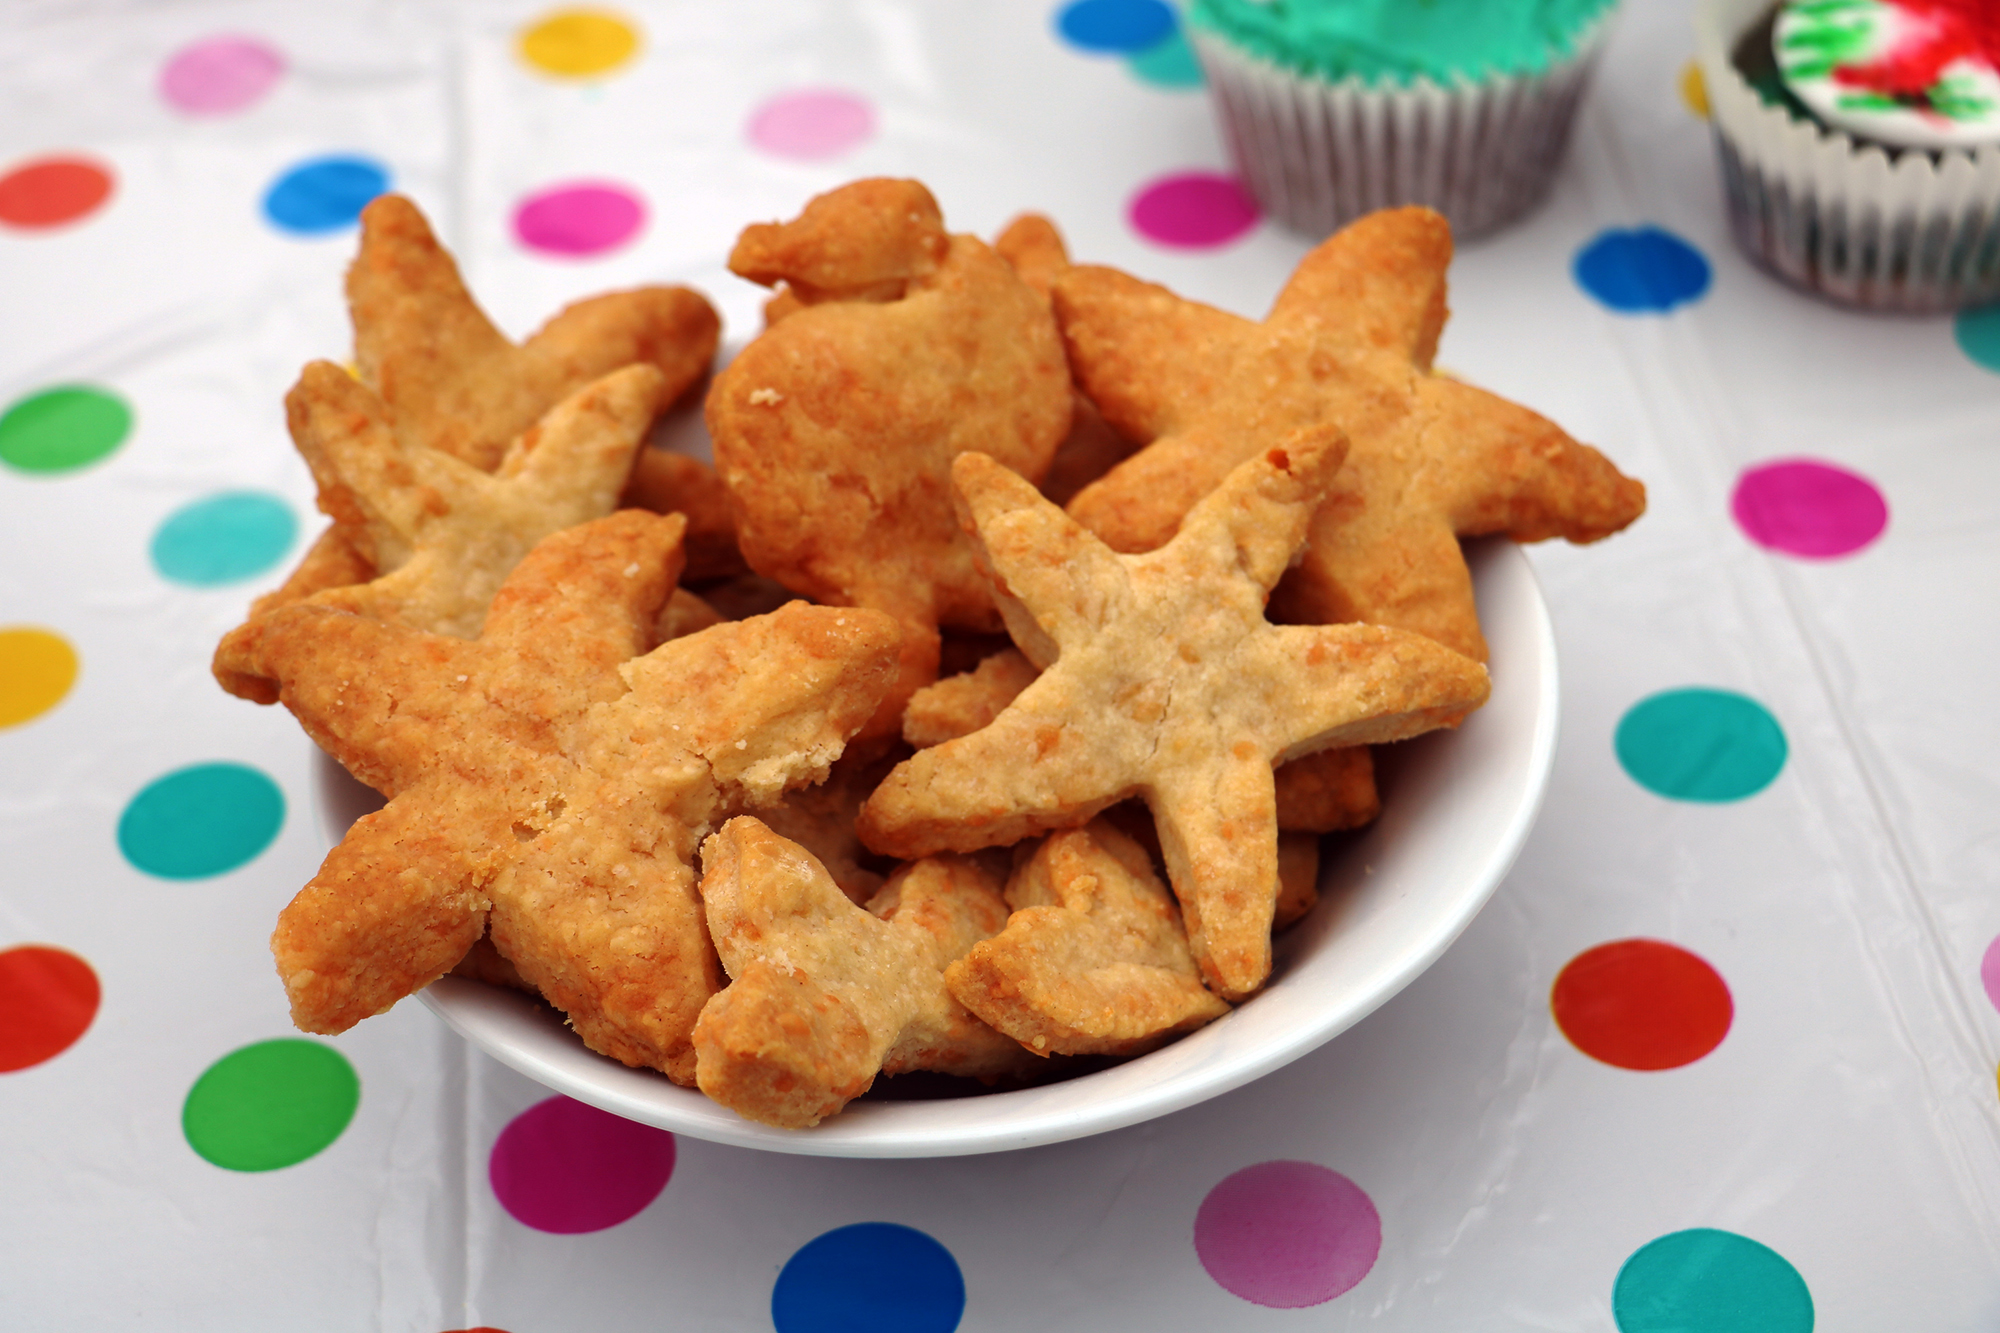 starfish shaped biscuits in a white bowl on table.